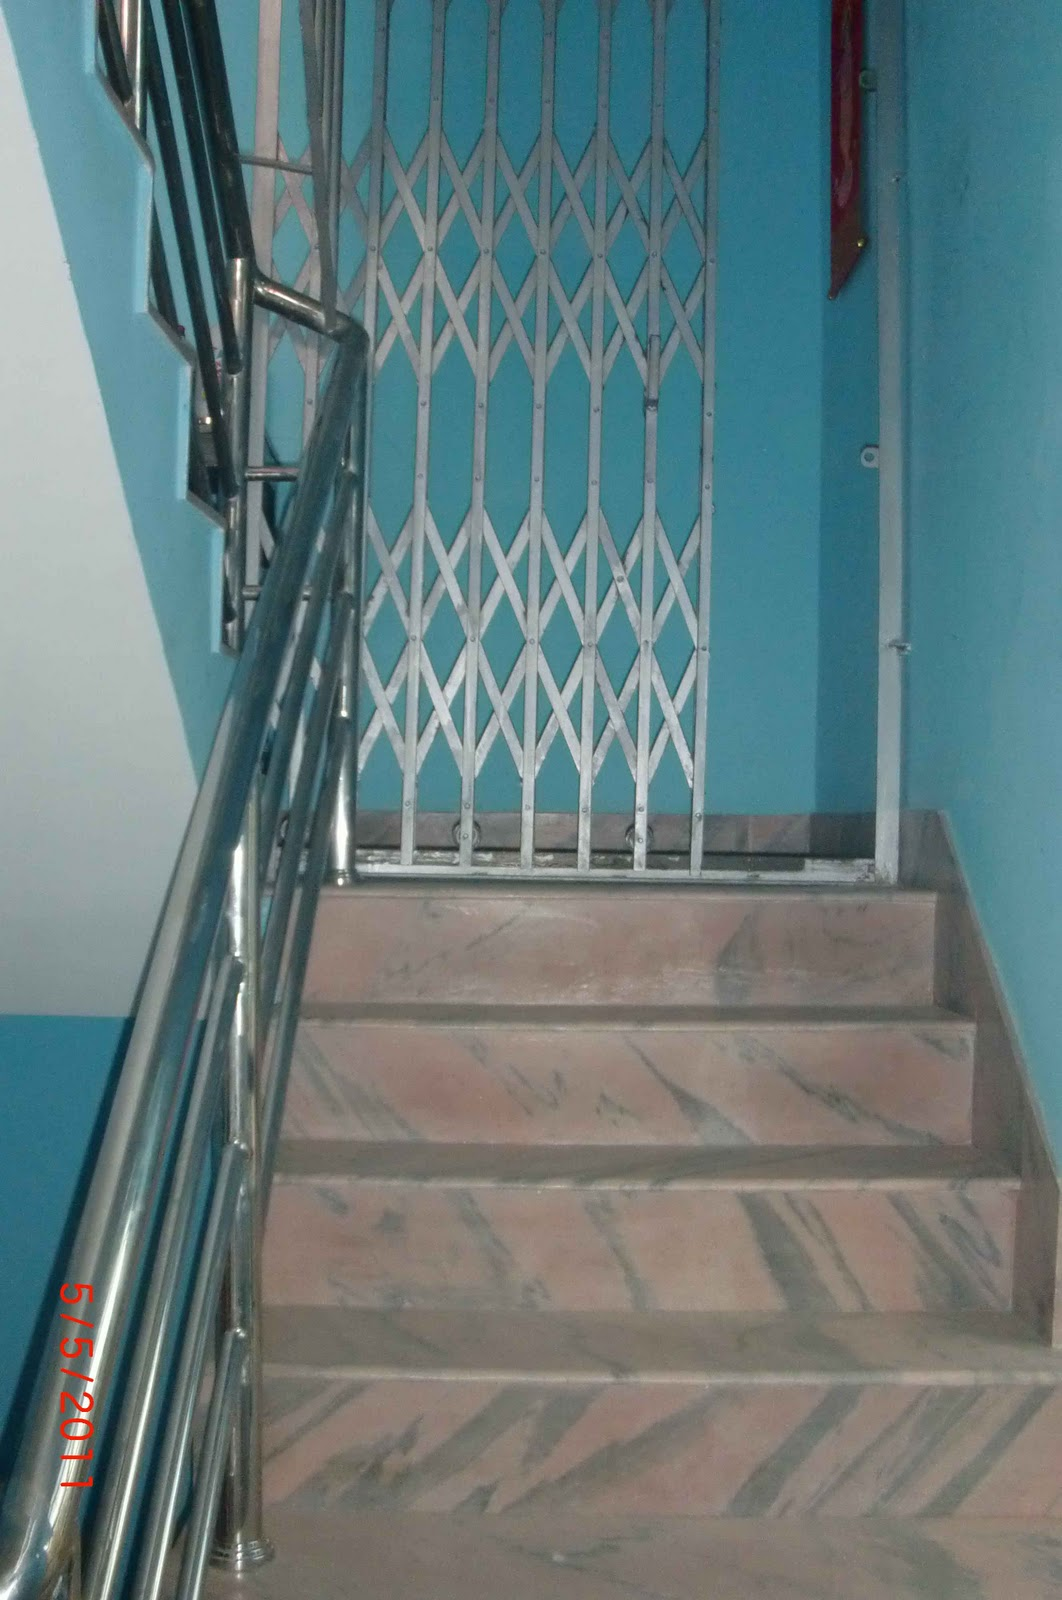 Study Room 40000: APARTMENT FOR RENT IN KATHMANDU: APARTMENT FOR RENT IN